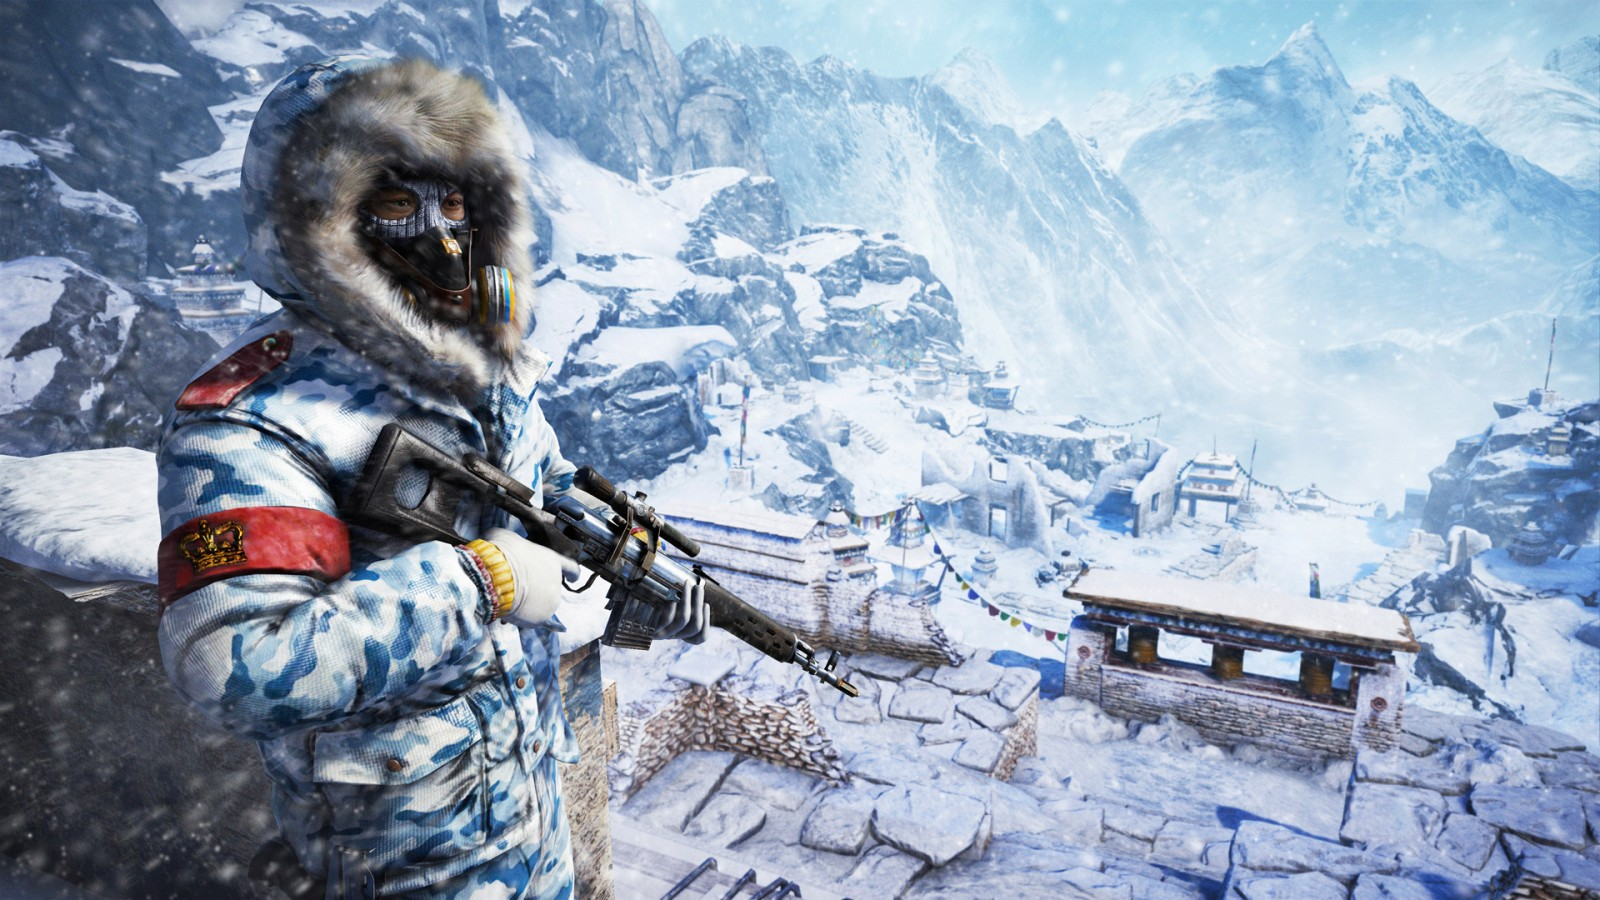 Free Far Cry 4 Wallpaper 43195 1600x900px